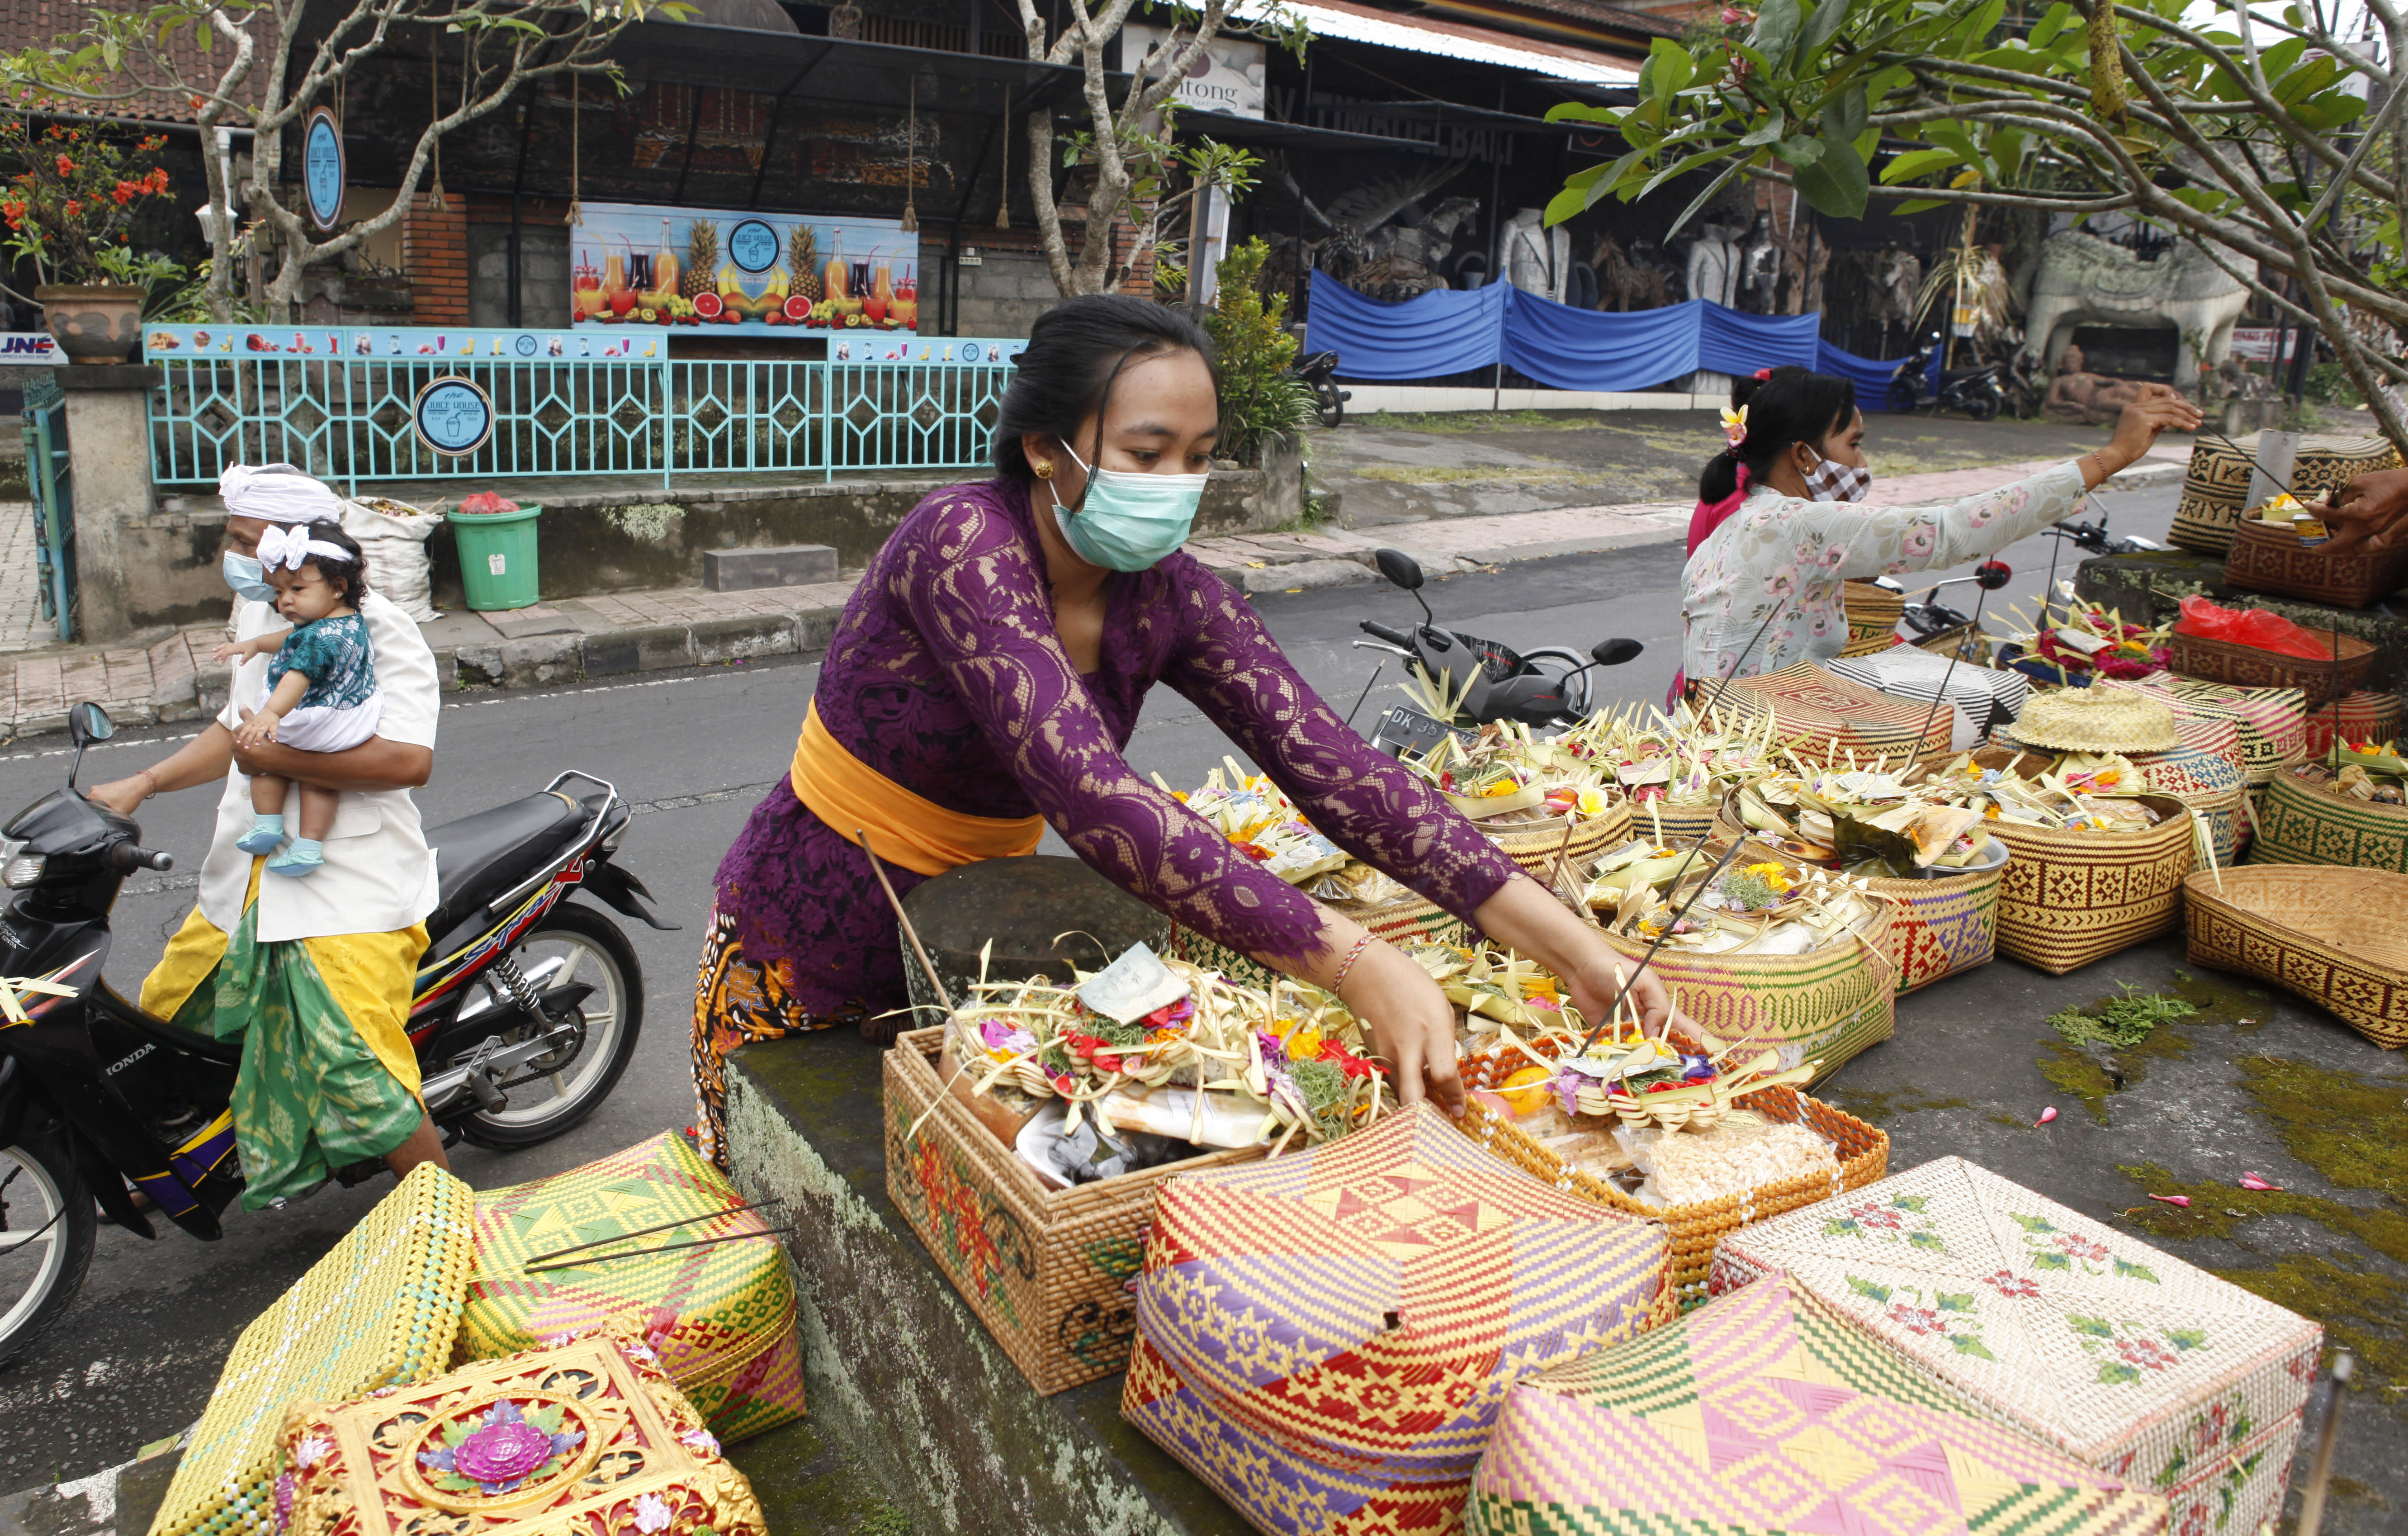 A woman gives an offering as she wears a face mask as a precaution against the new coronavirus outbreak during a Hindu ritual prayer at a temple in Bali, Indonesia, Wednesday, Sept. 16, 2020. (AP Photo/Firdia Lisnawati)